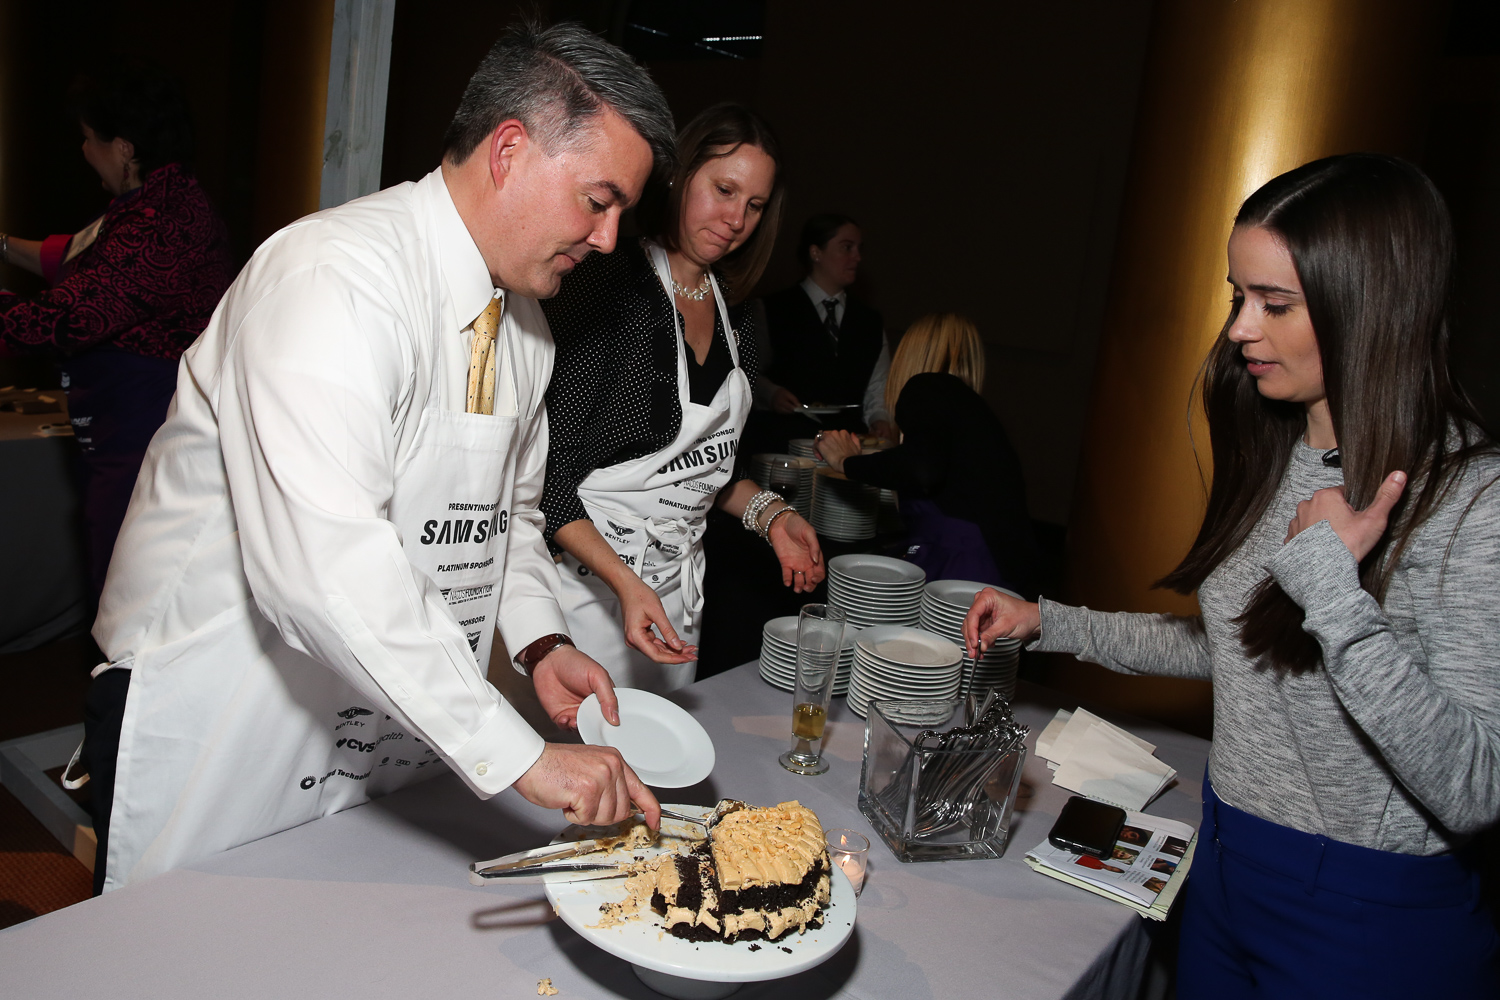 Sen. Cory Gardner and the cake which his wife makes on their anniversary. (Amanda Andrade-Rhoades/DC Refined)